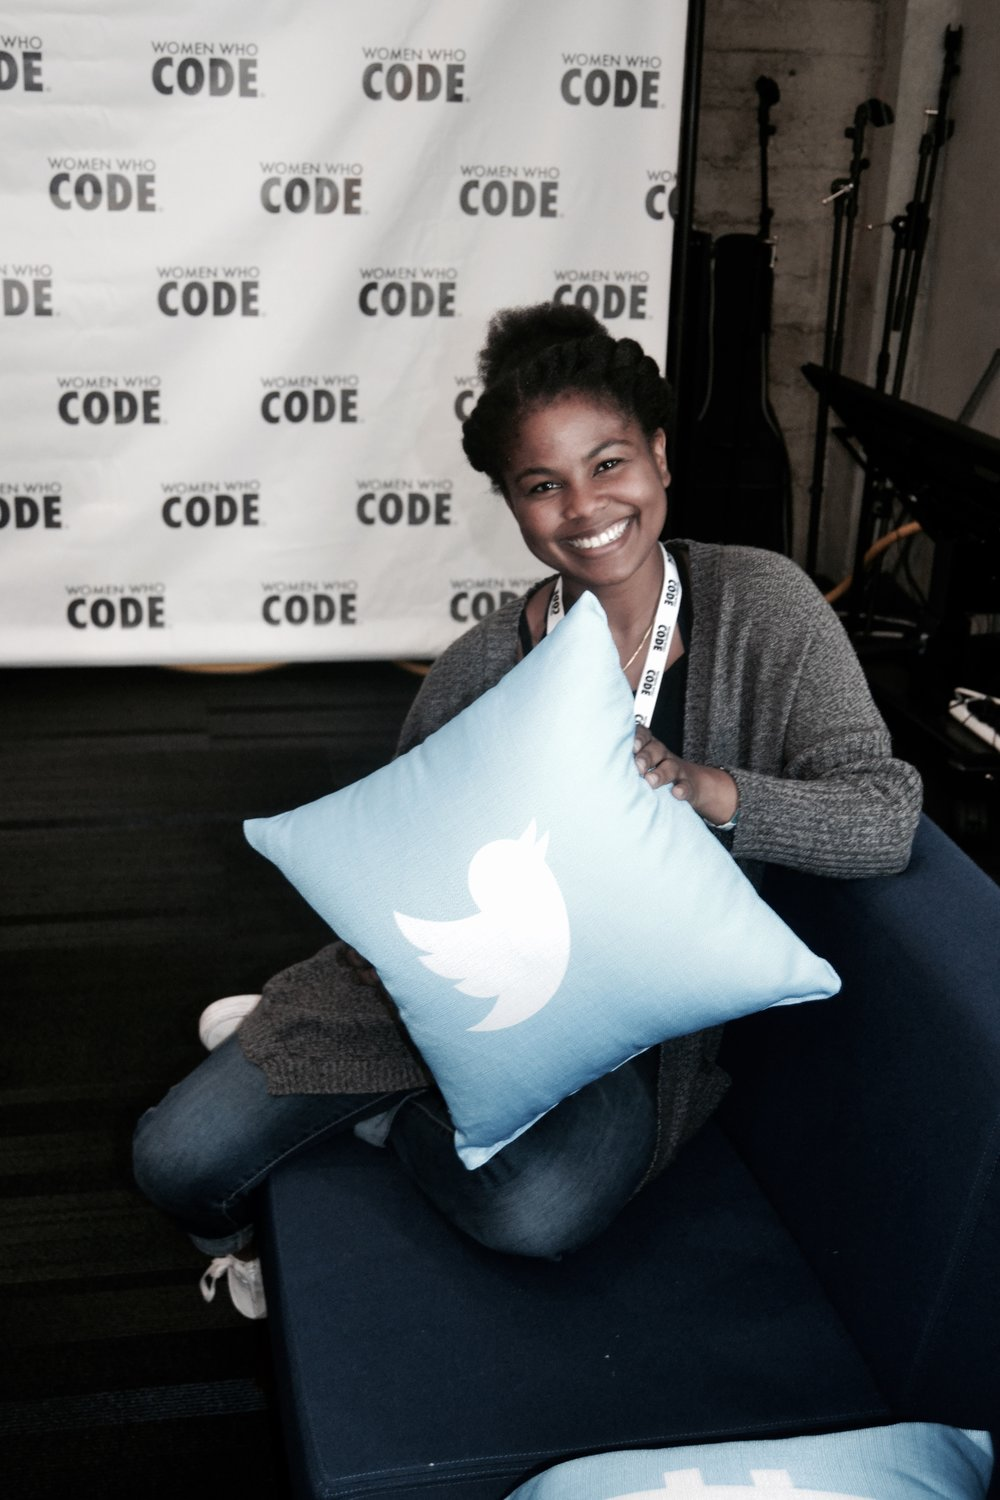 women who code, coding, twitter hq, tech conference